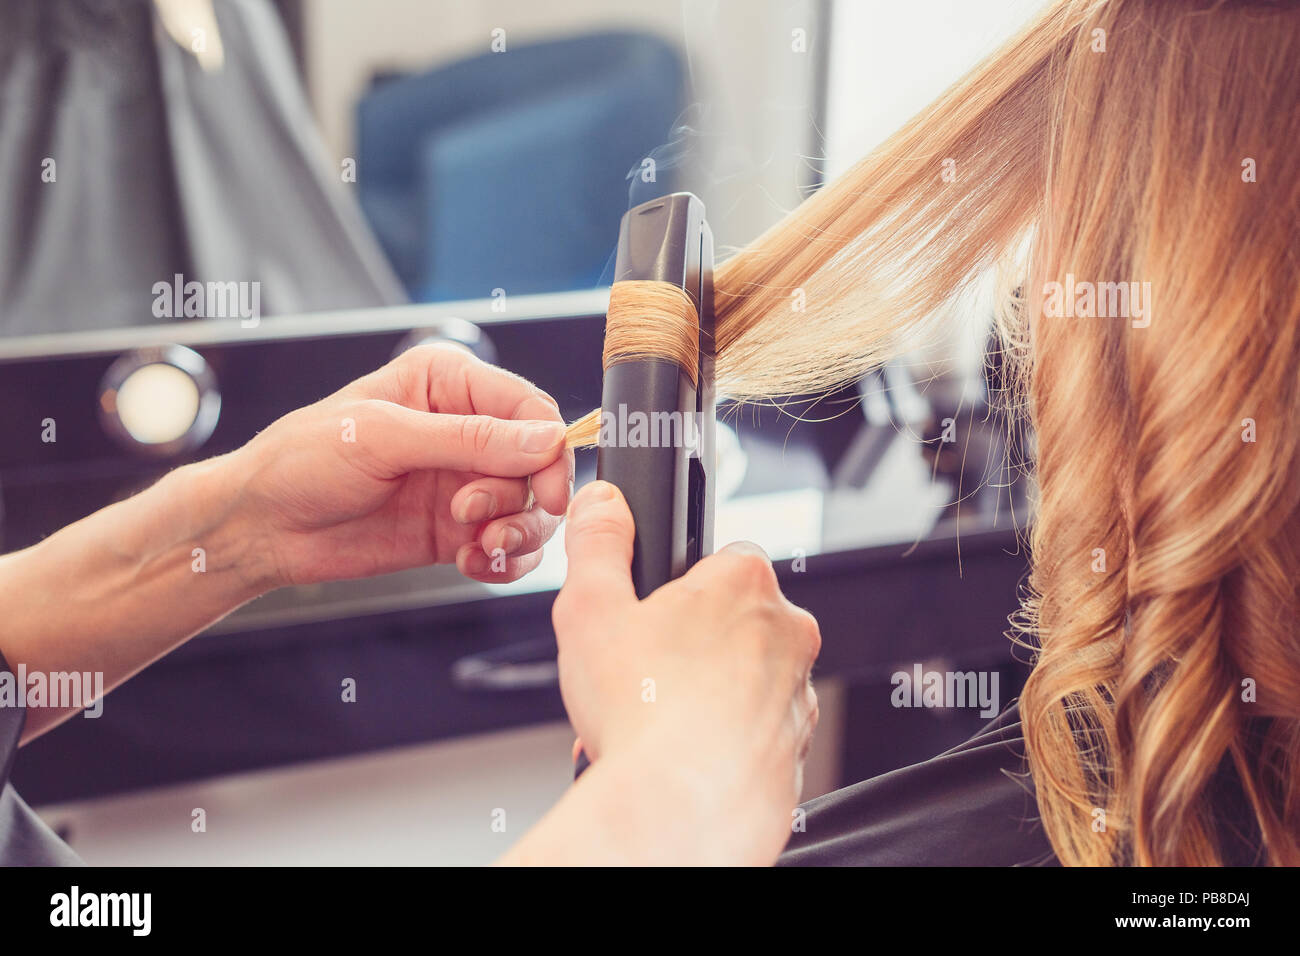 Hairdresser making a hairstyle for client with a curling iron in beauty salon - Stock Image